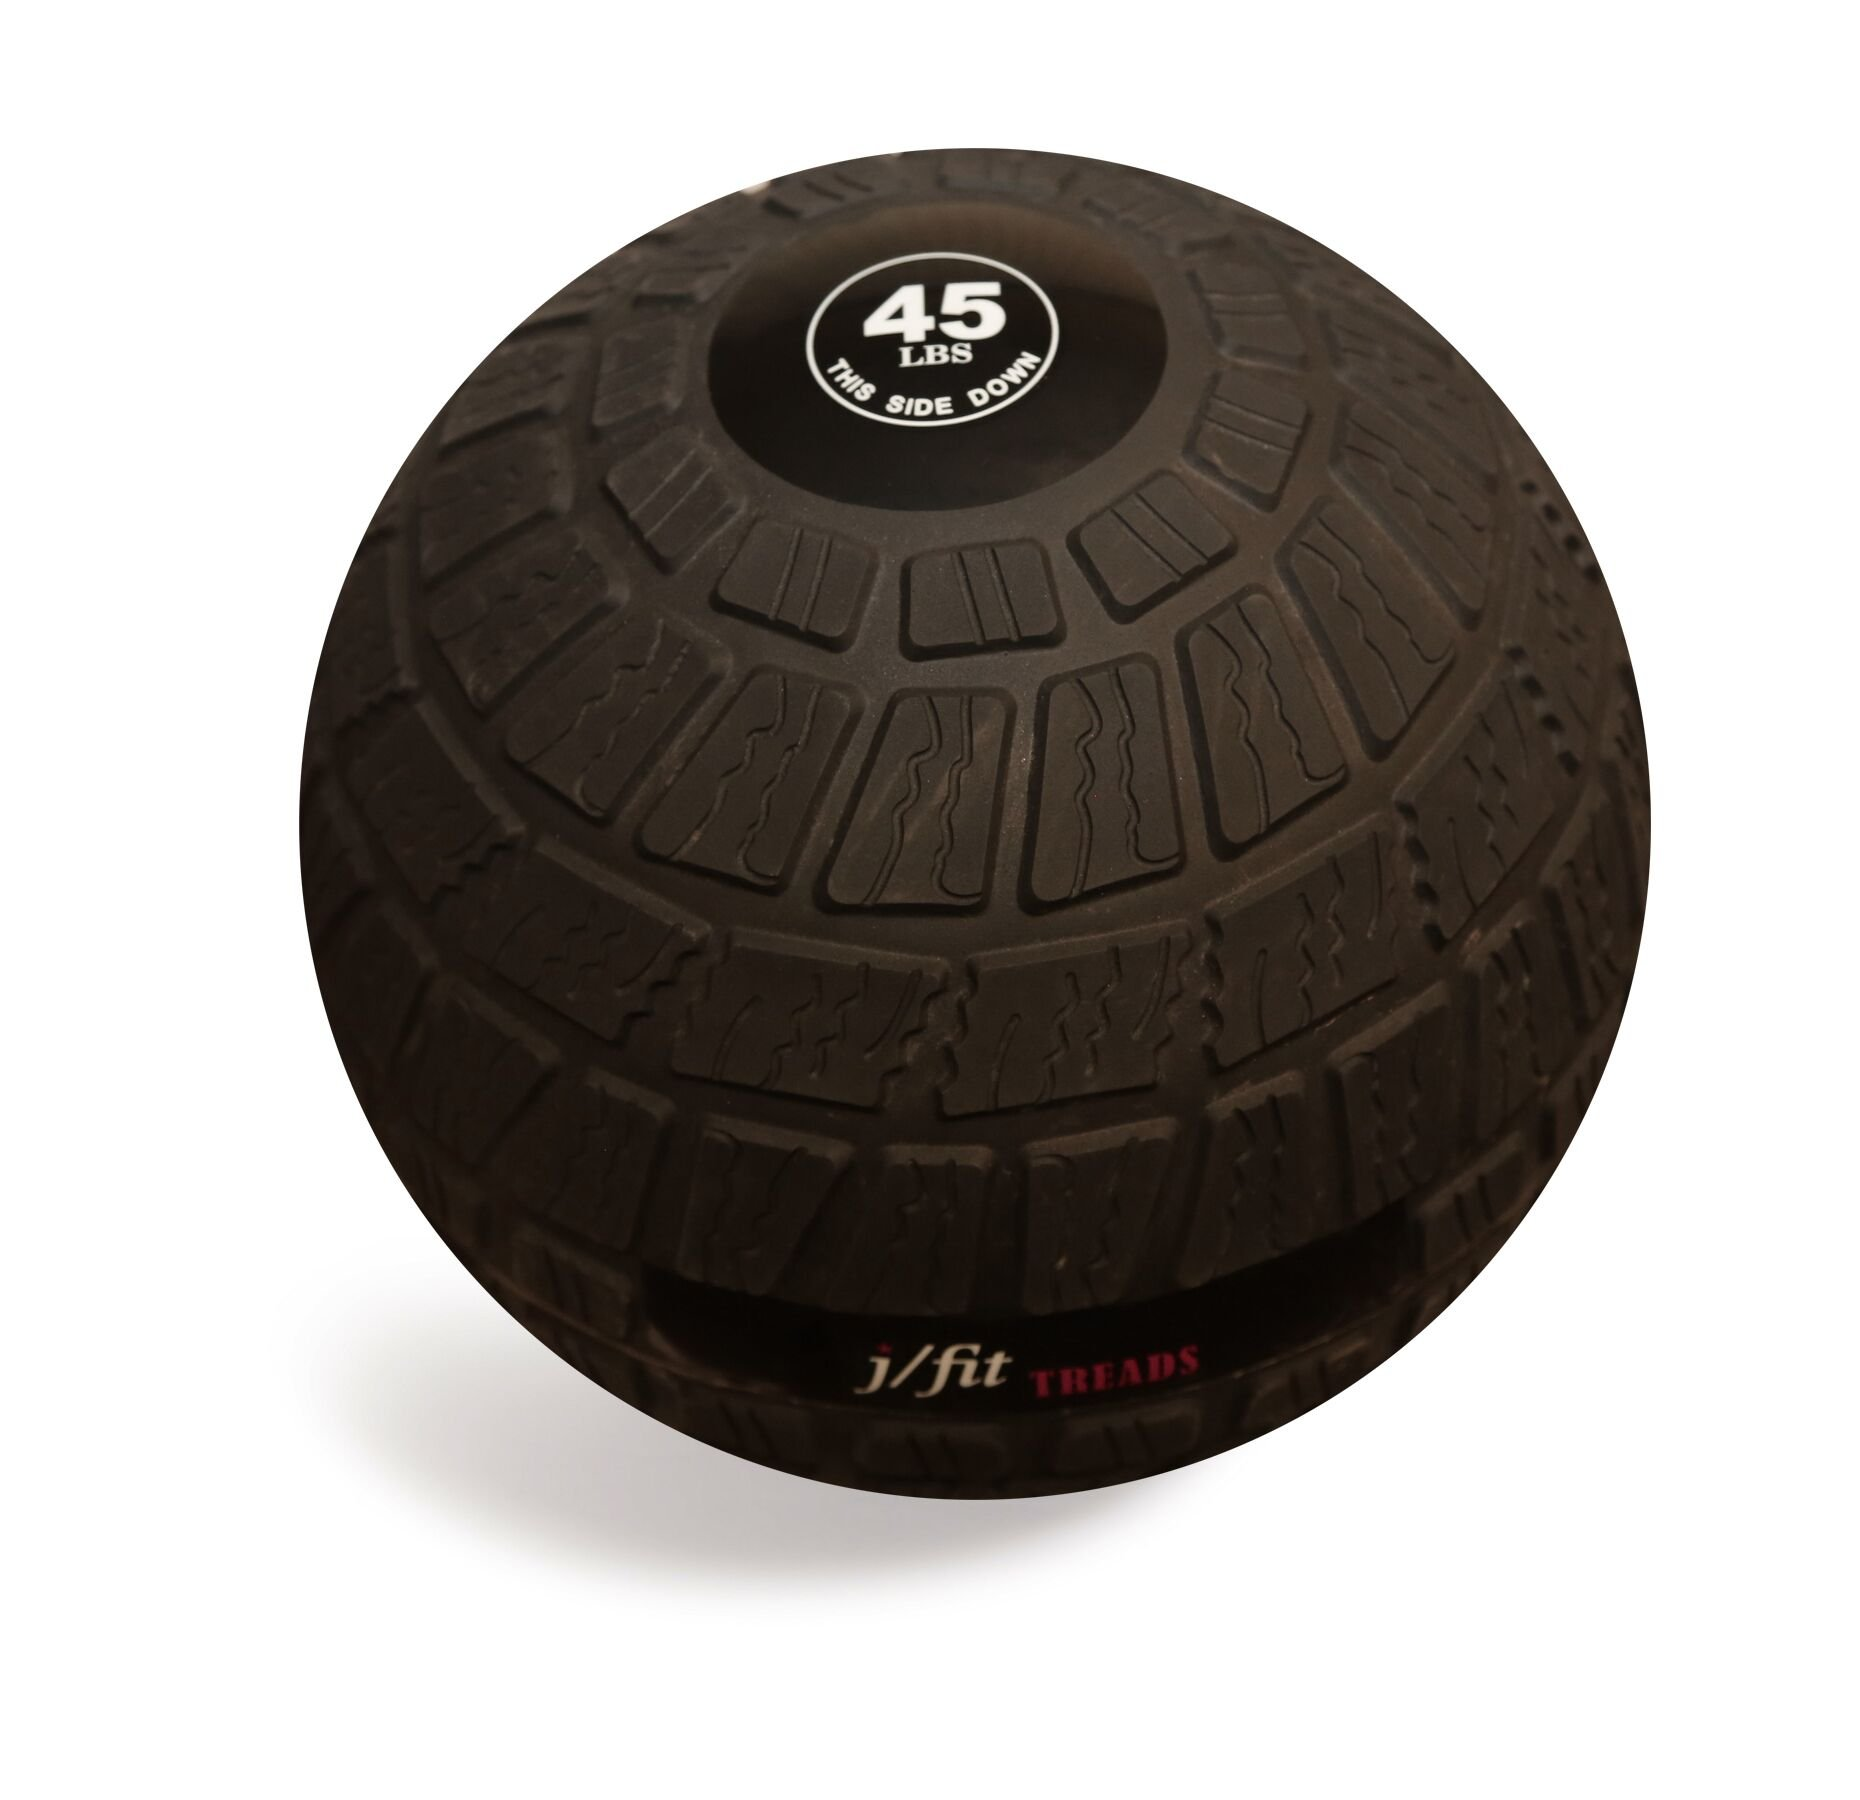 j/fit TREADS Dead Weight Slam Ball with Easy-Grip Textured Surface, 45 lb by j/fit (Image #1)